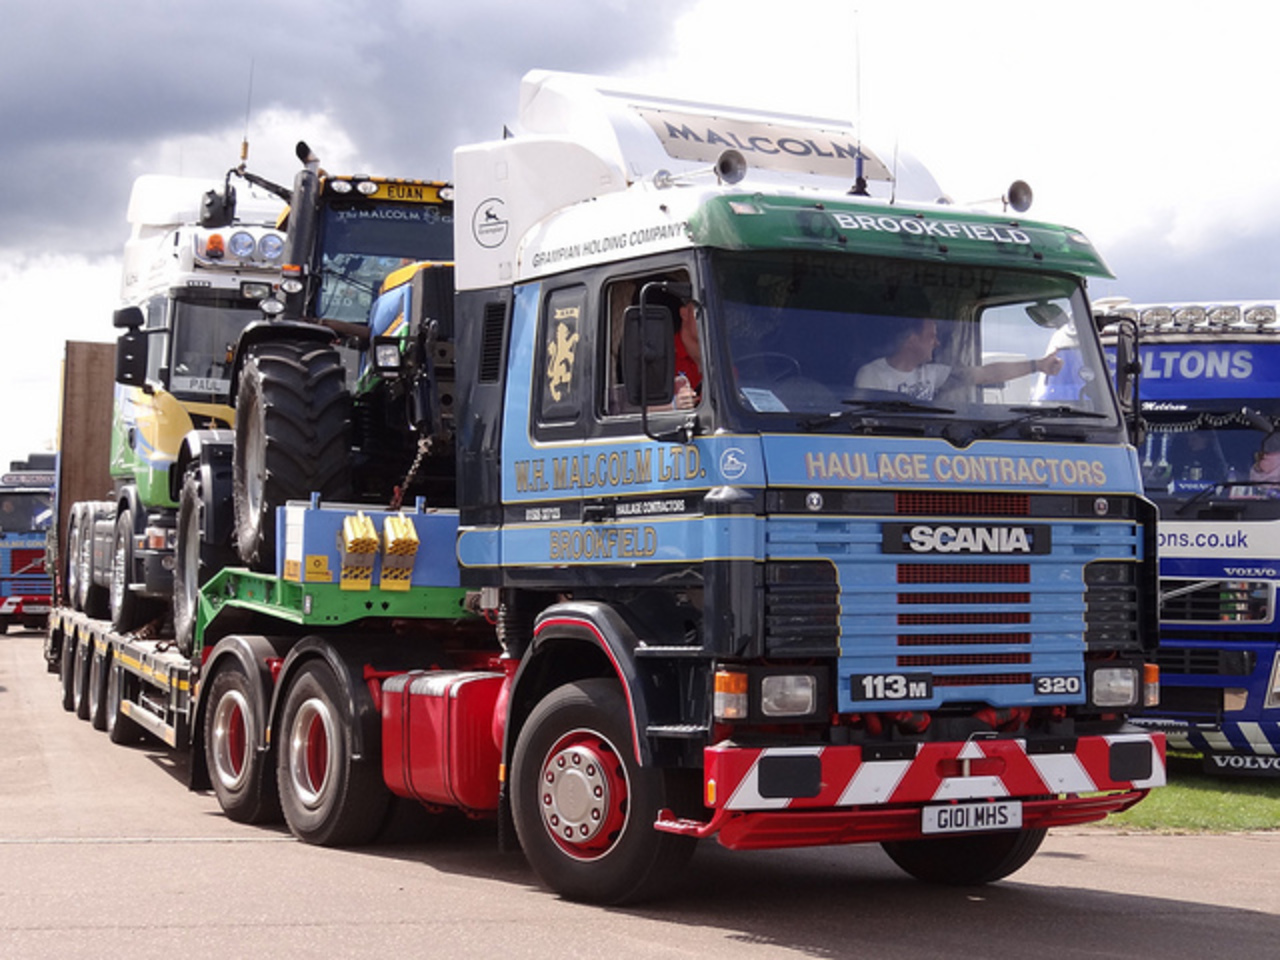 The Malcolm Group - Scania 113M 320 (G101 MHS) | Flickr - Photo ...